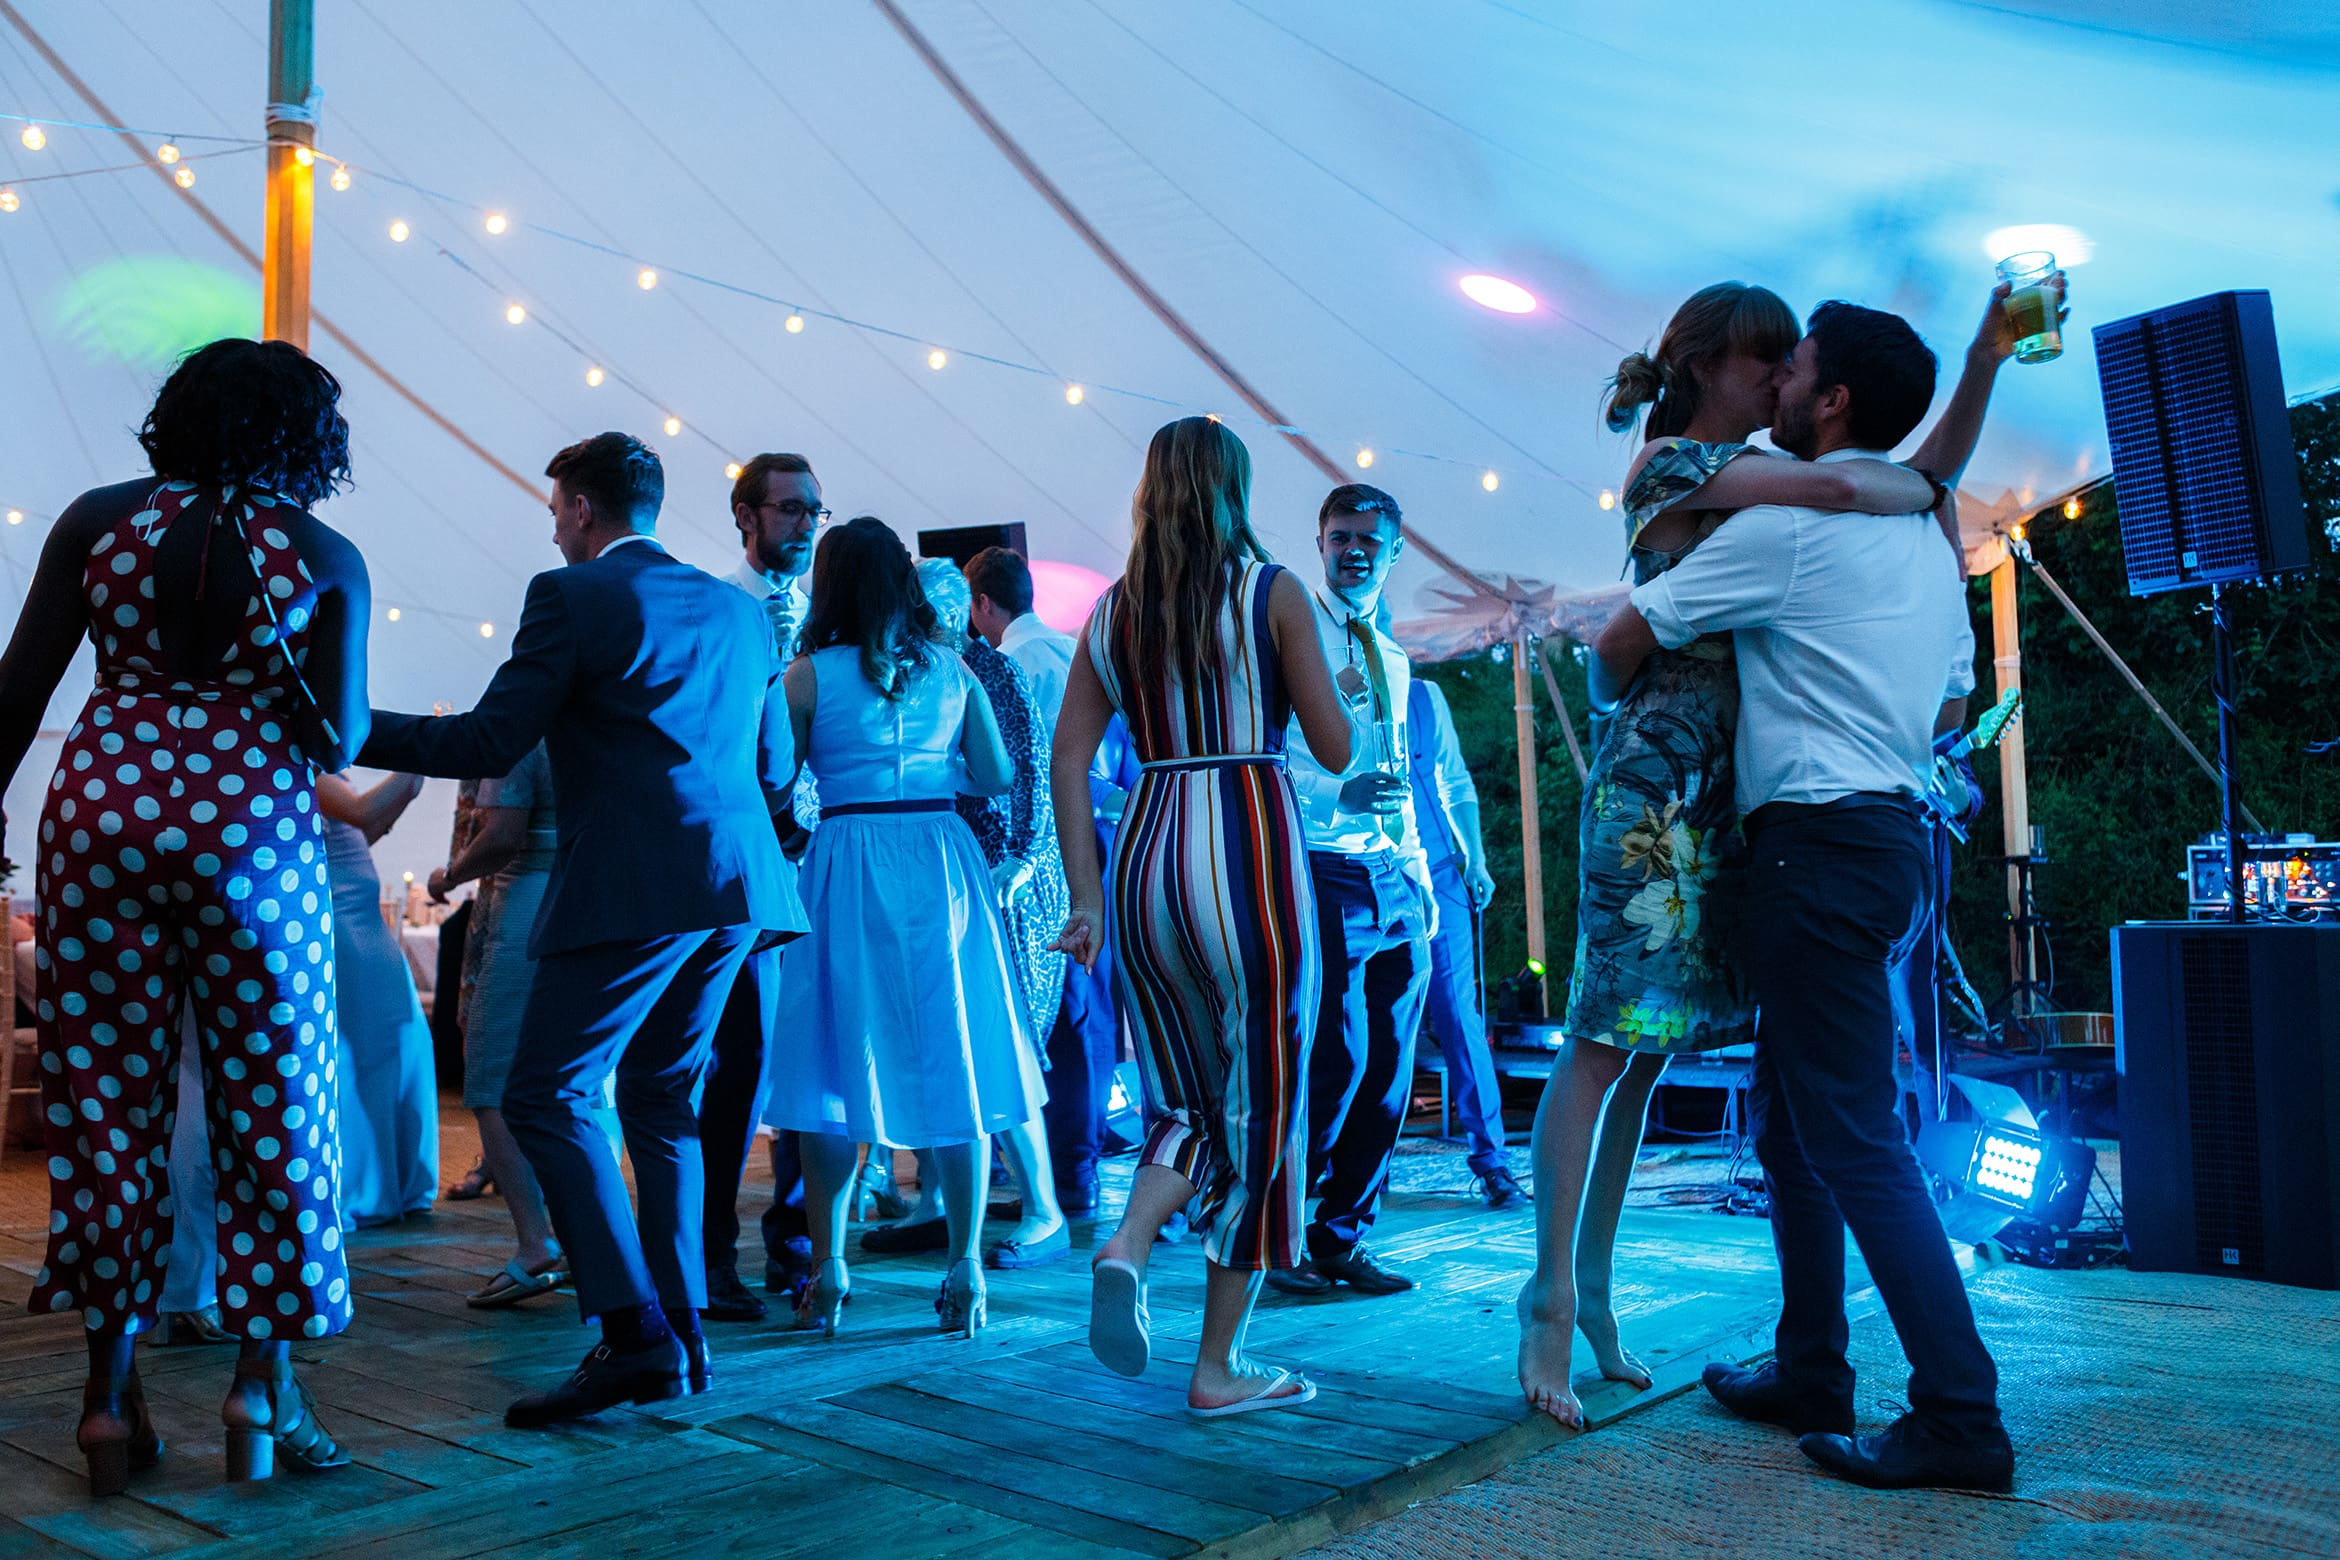 a couple kiss on the dancefloor